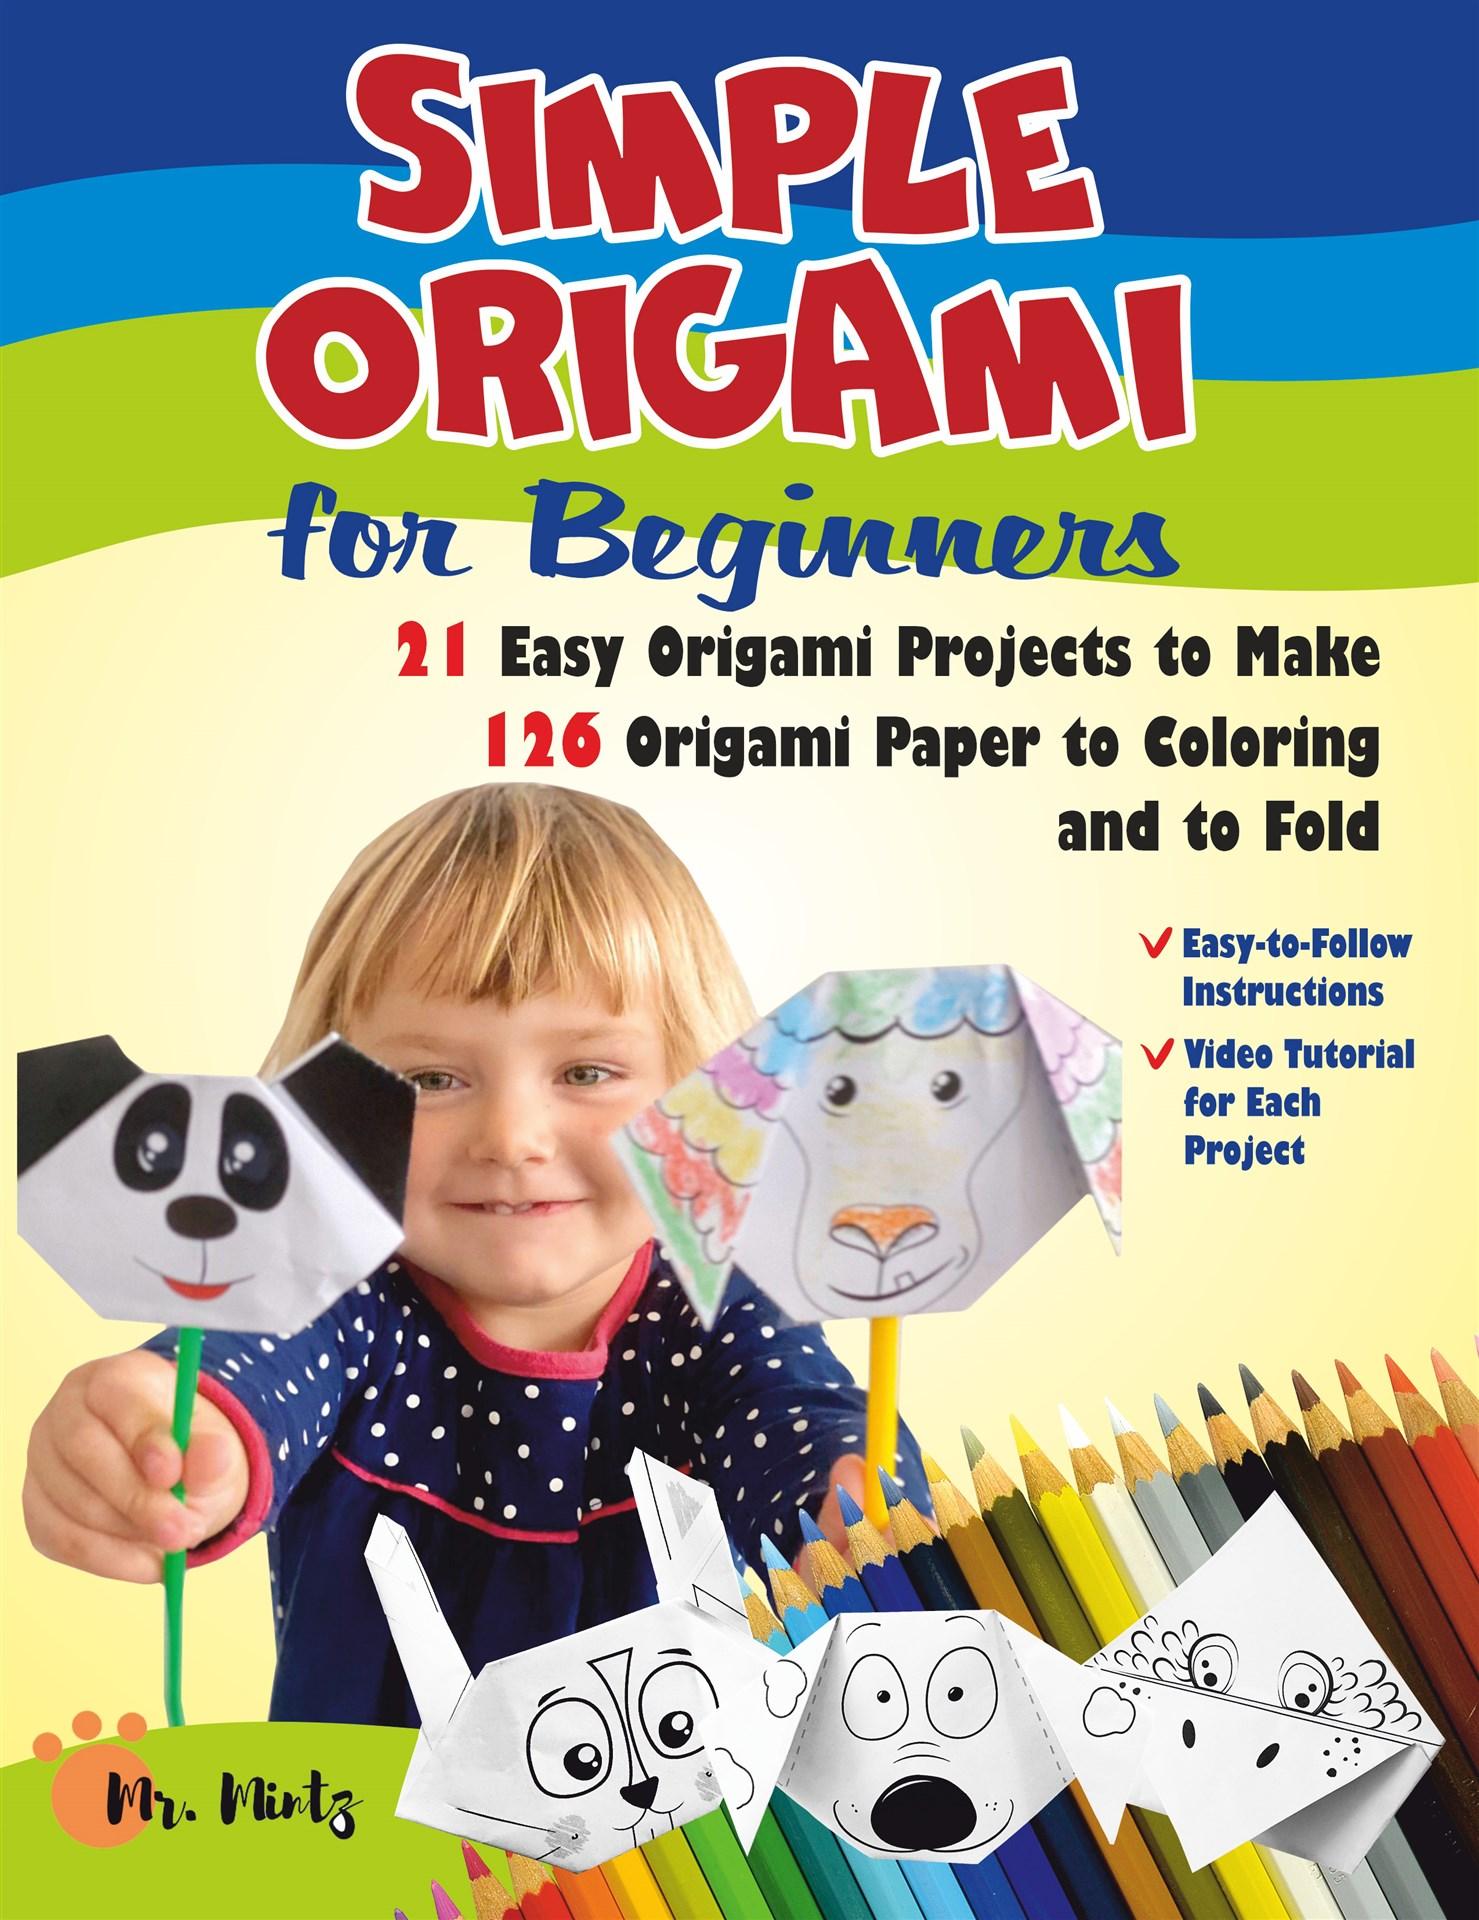 Simple Origami for Beginners. 21 Projects and 126 Origami Paper to Coloring and to Fold